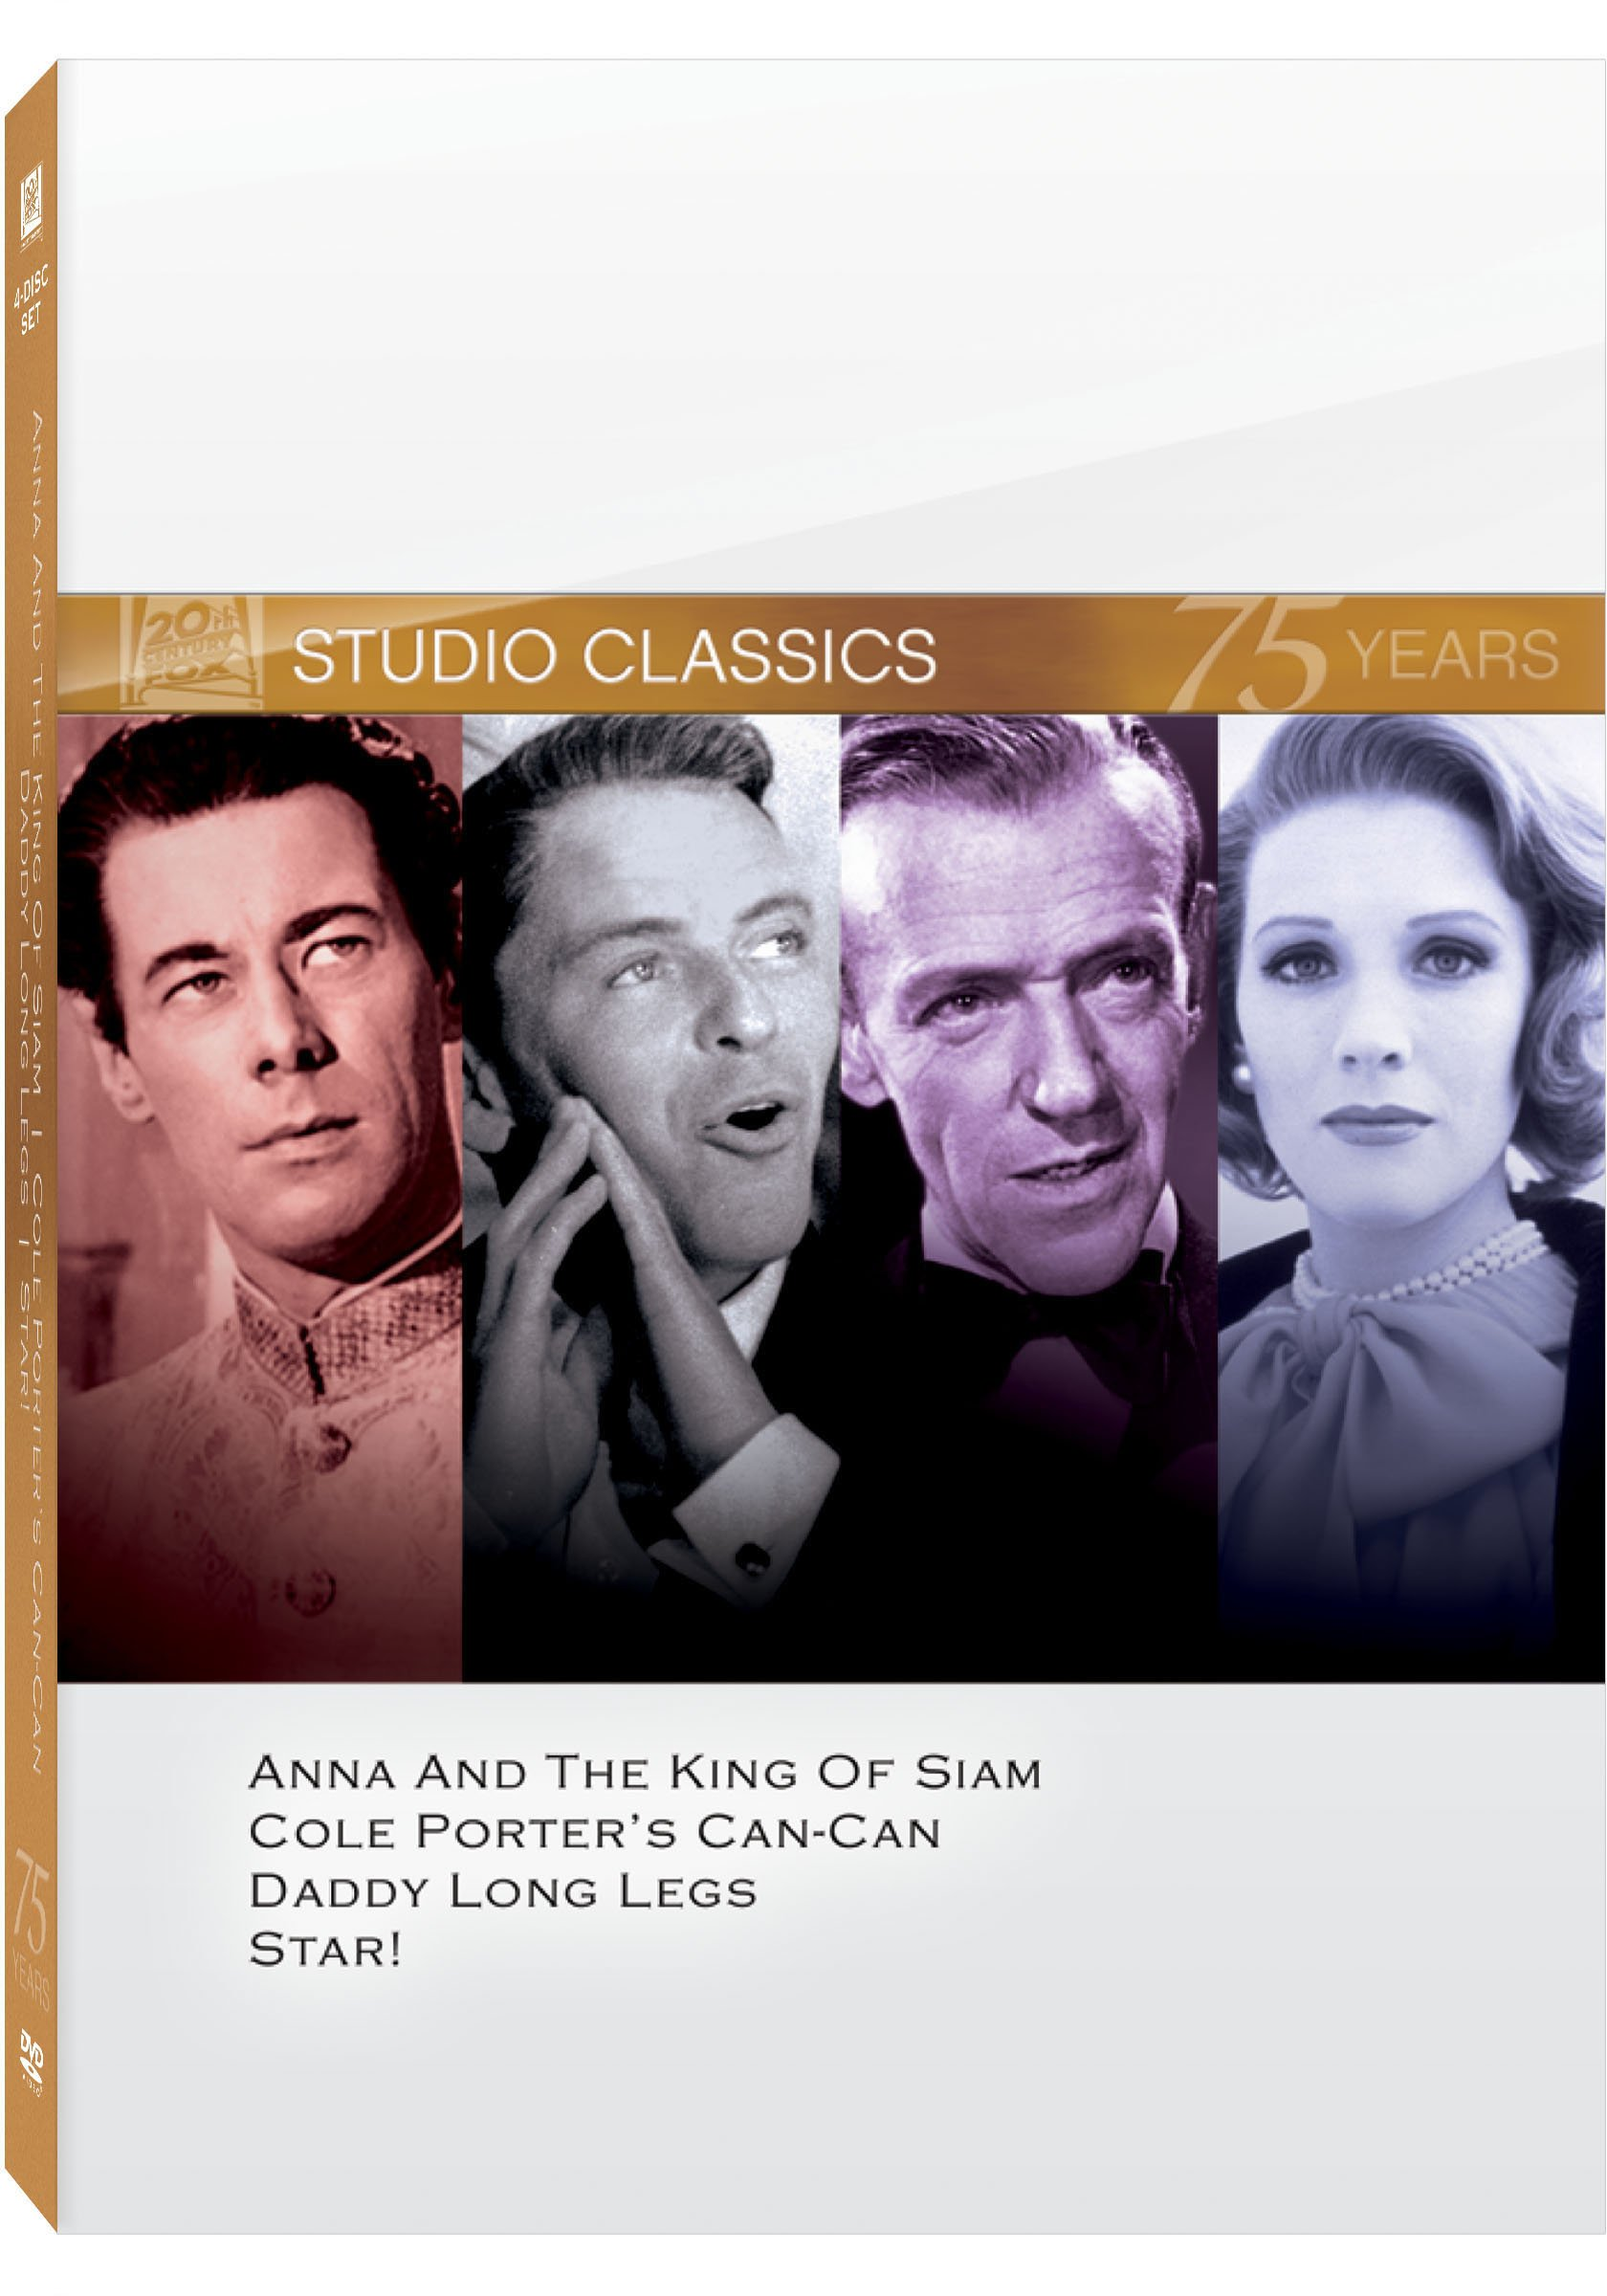 Classic Quad Set 1 (Anna and the King of Siam / Can-Can / Daddy Long Legs / Star!)